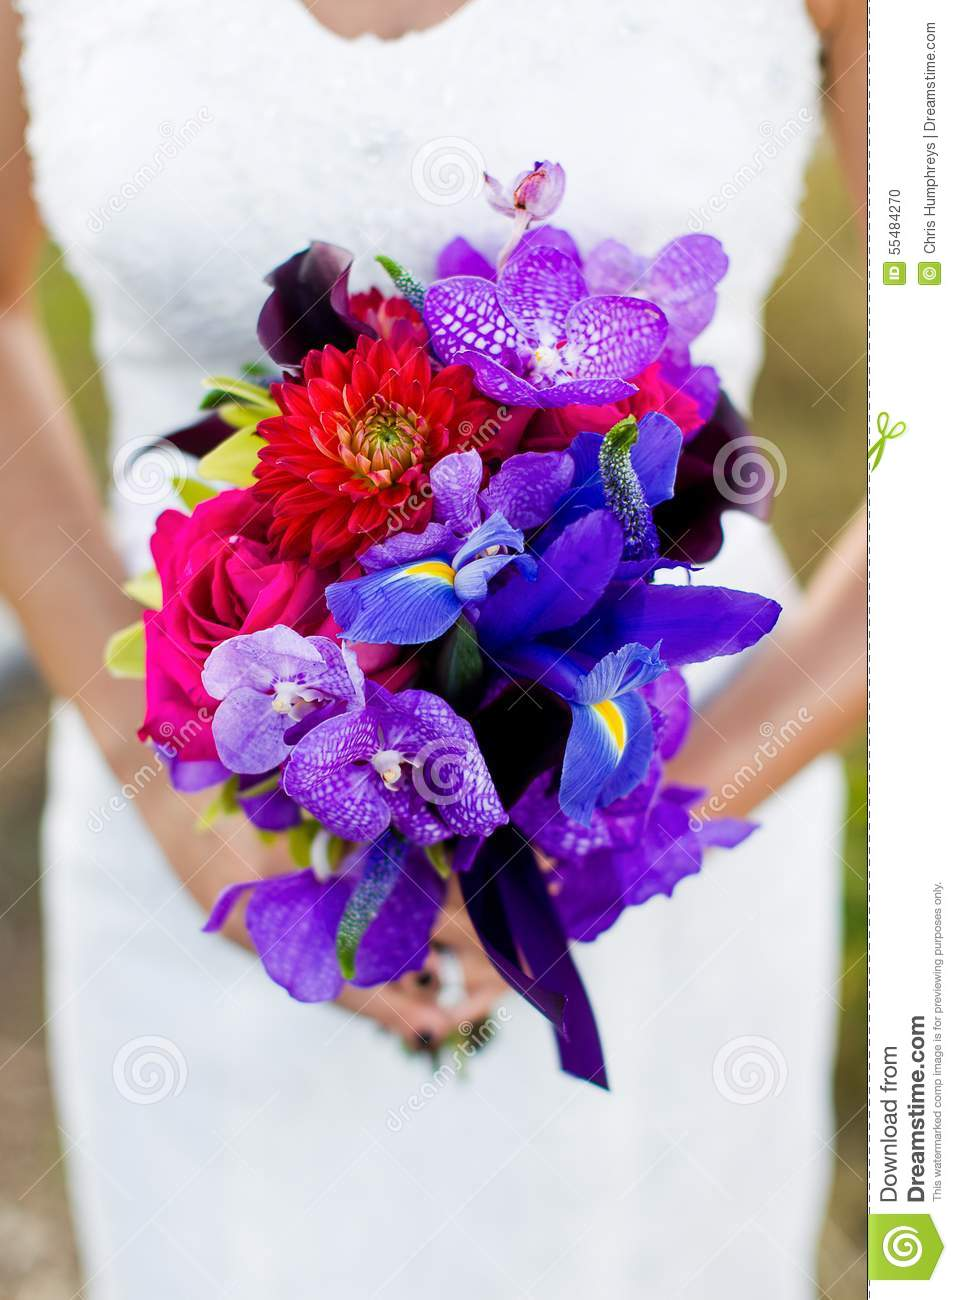 Bride With Bouquet Of Flowers At Wedding Stock Photo Image Of